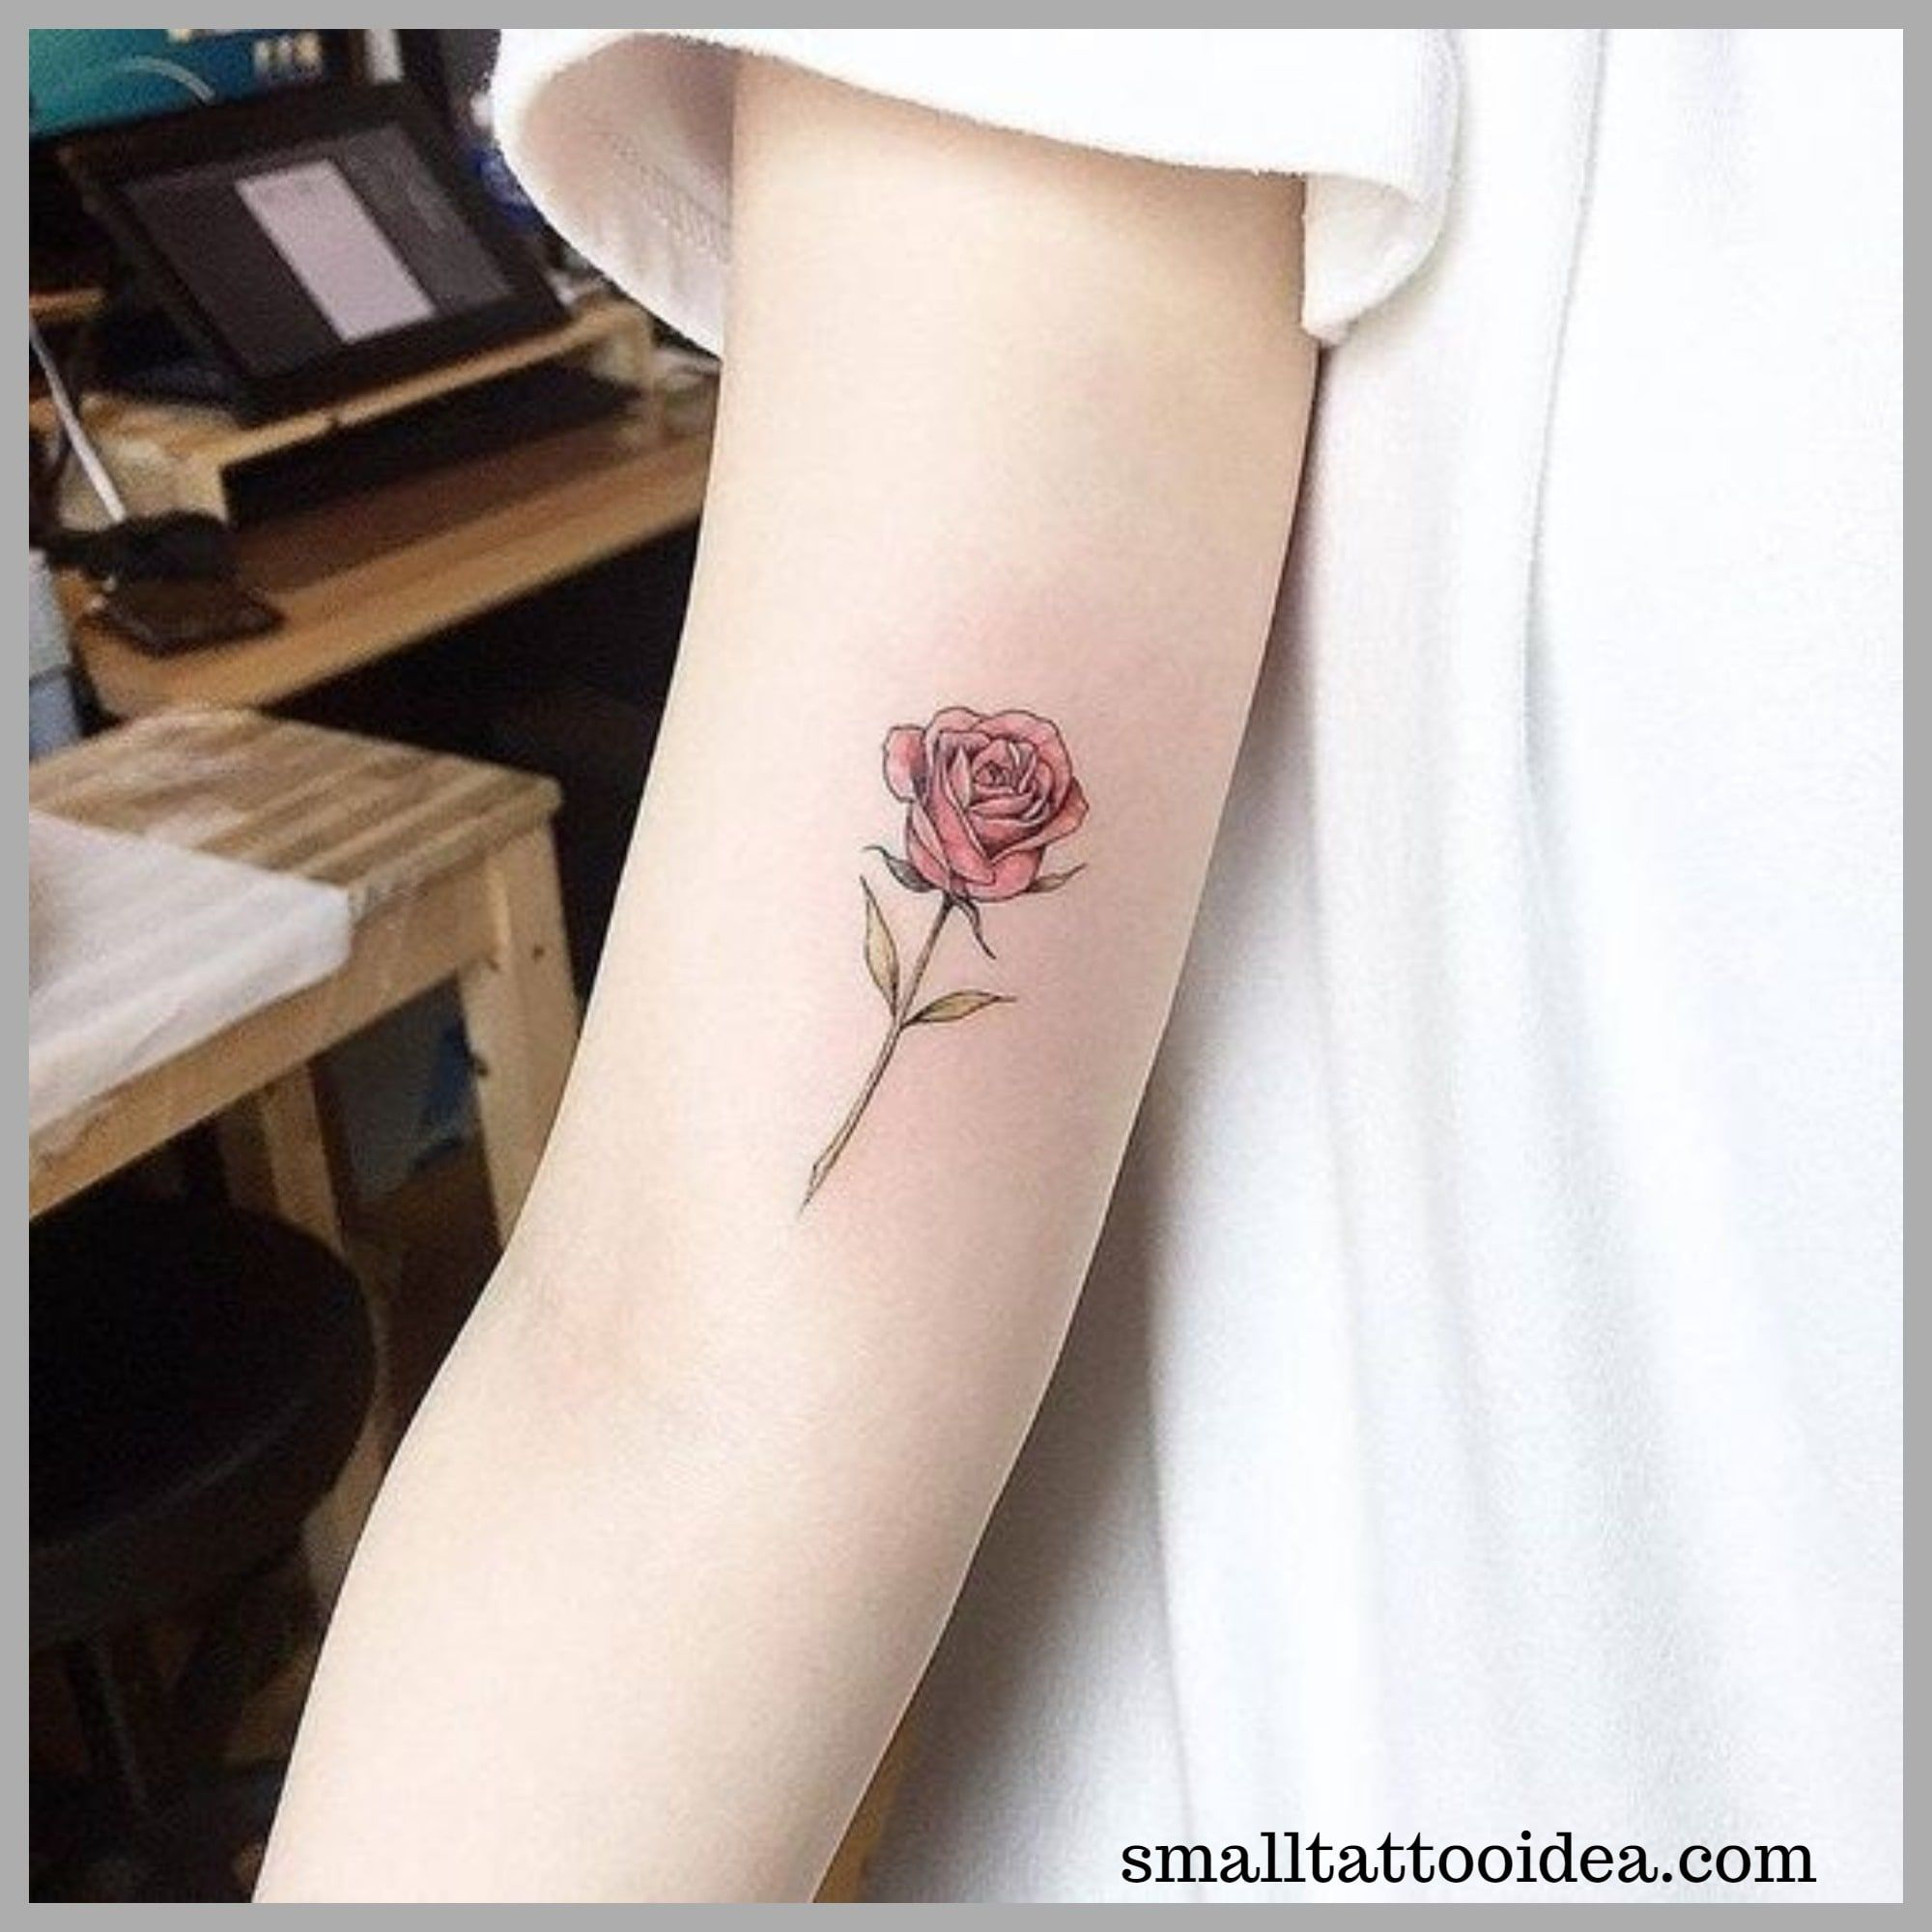 35 Small Red Rose Tattoo Ideas For Girls Tattoo Small Rose Tattoo Red Rose Tattoo Tiny Rose Tattoos